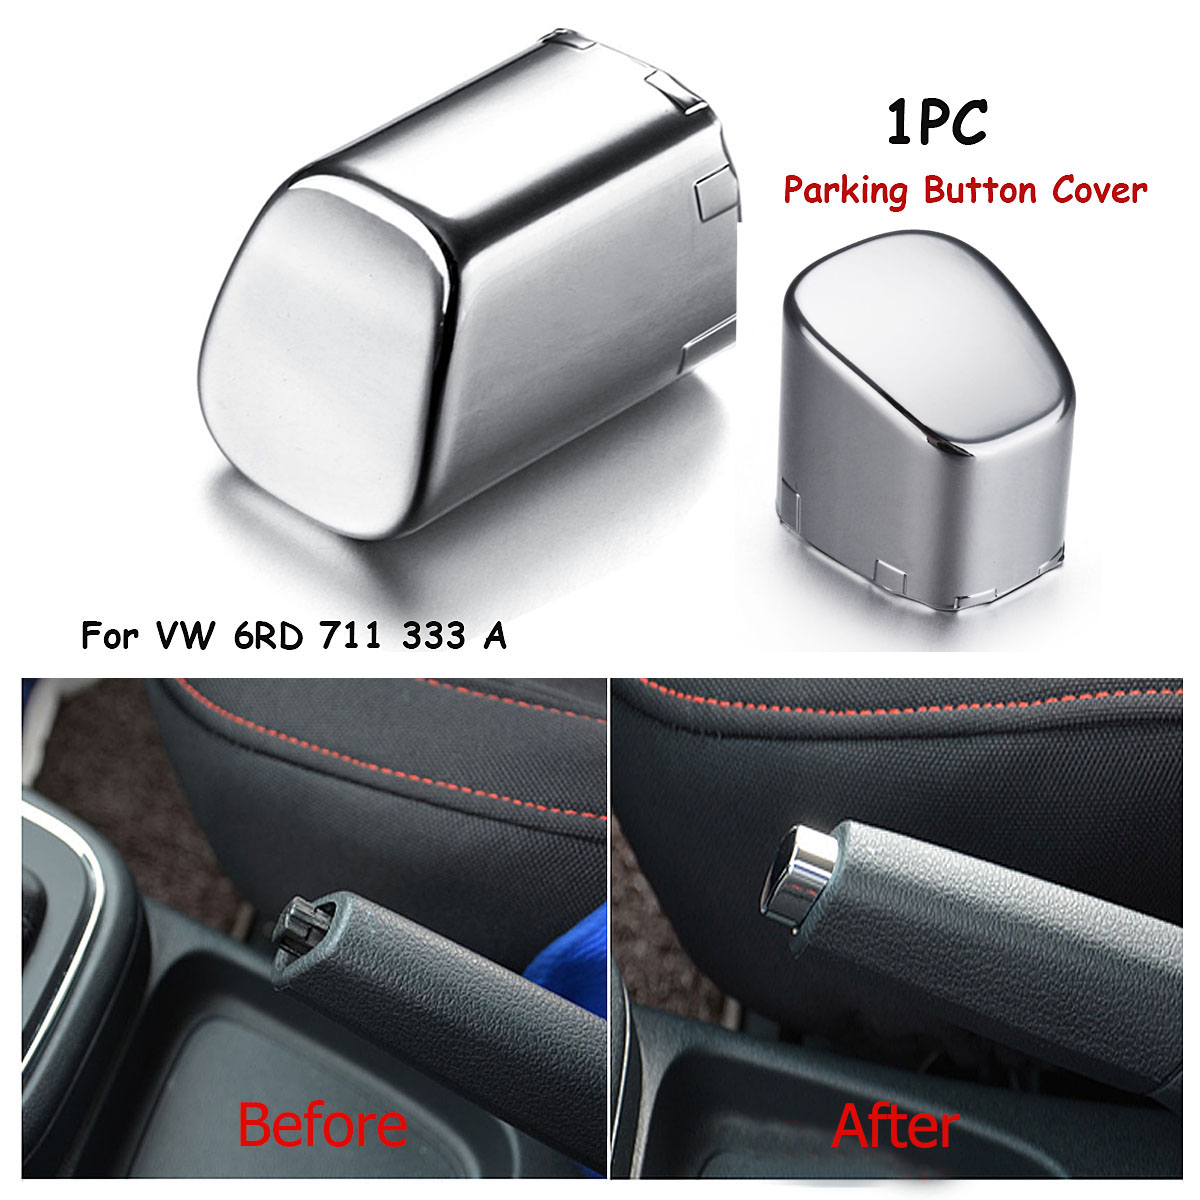 Parking-Button-Cover Car-Handbrake-Lever Chrome-Decoration Vw Polo CROSS Car-Styling-Accessories